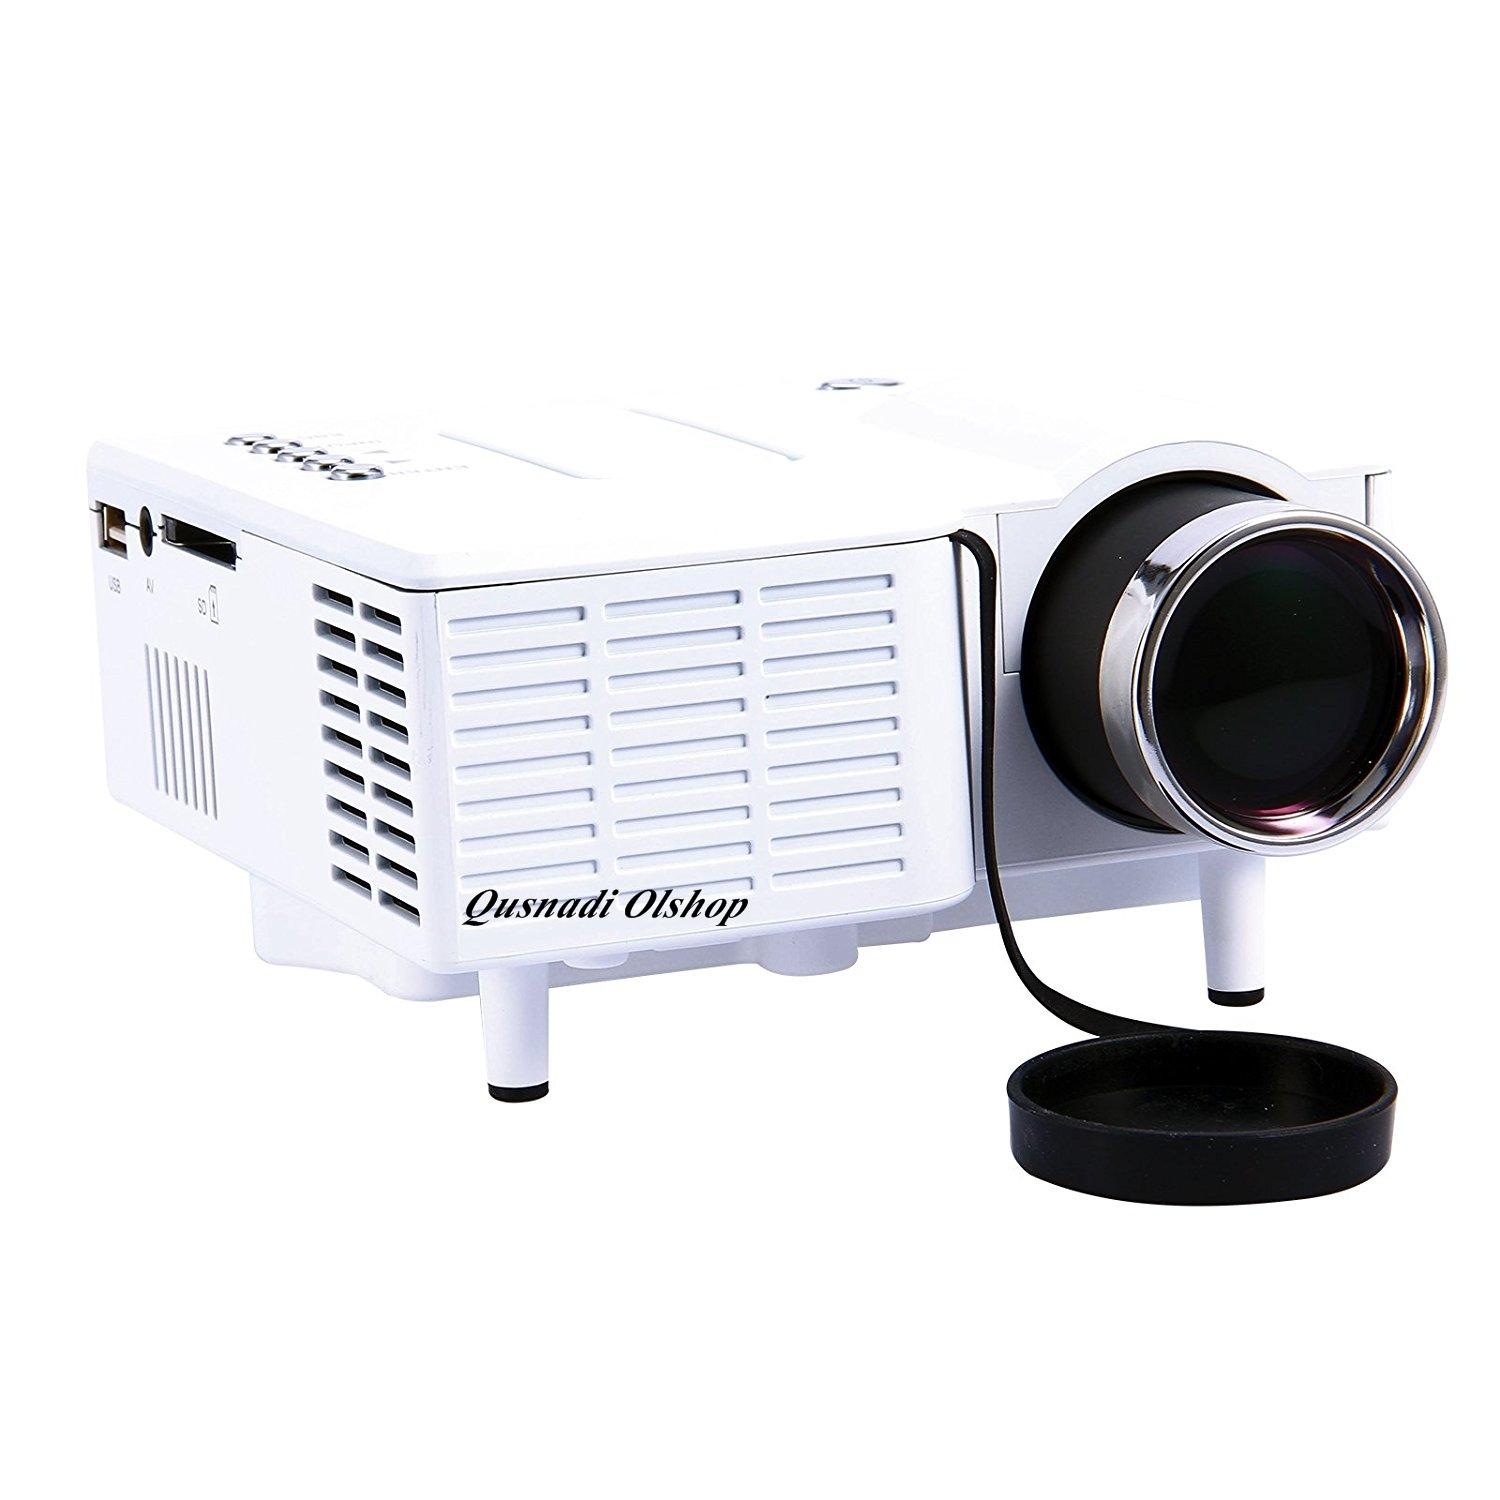 Proyektor Mini Portable Home Theater Infokus UNIC UC28 Projector Ponsel Android untuk Home Teater Notebook Ponsel